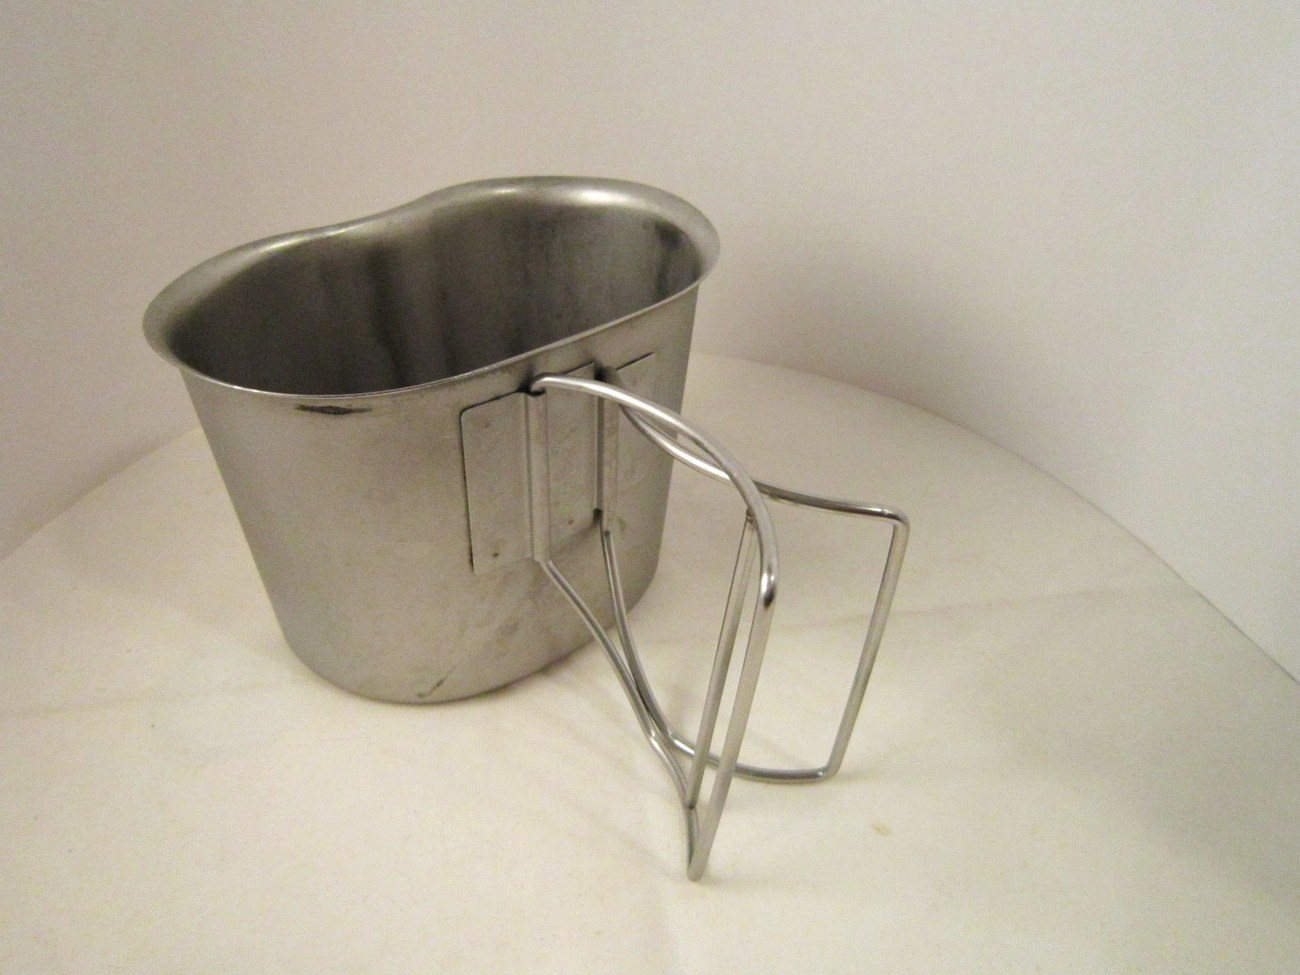 Canteen and Metal Cup US Military 1980s and Desert Storm era